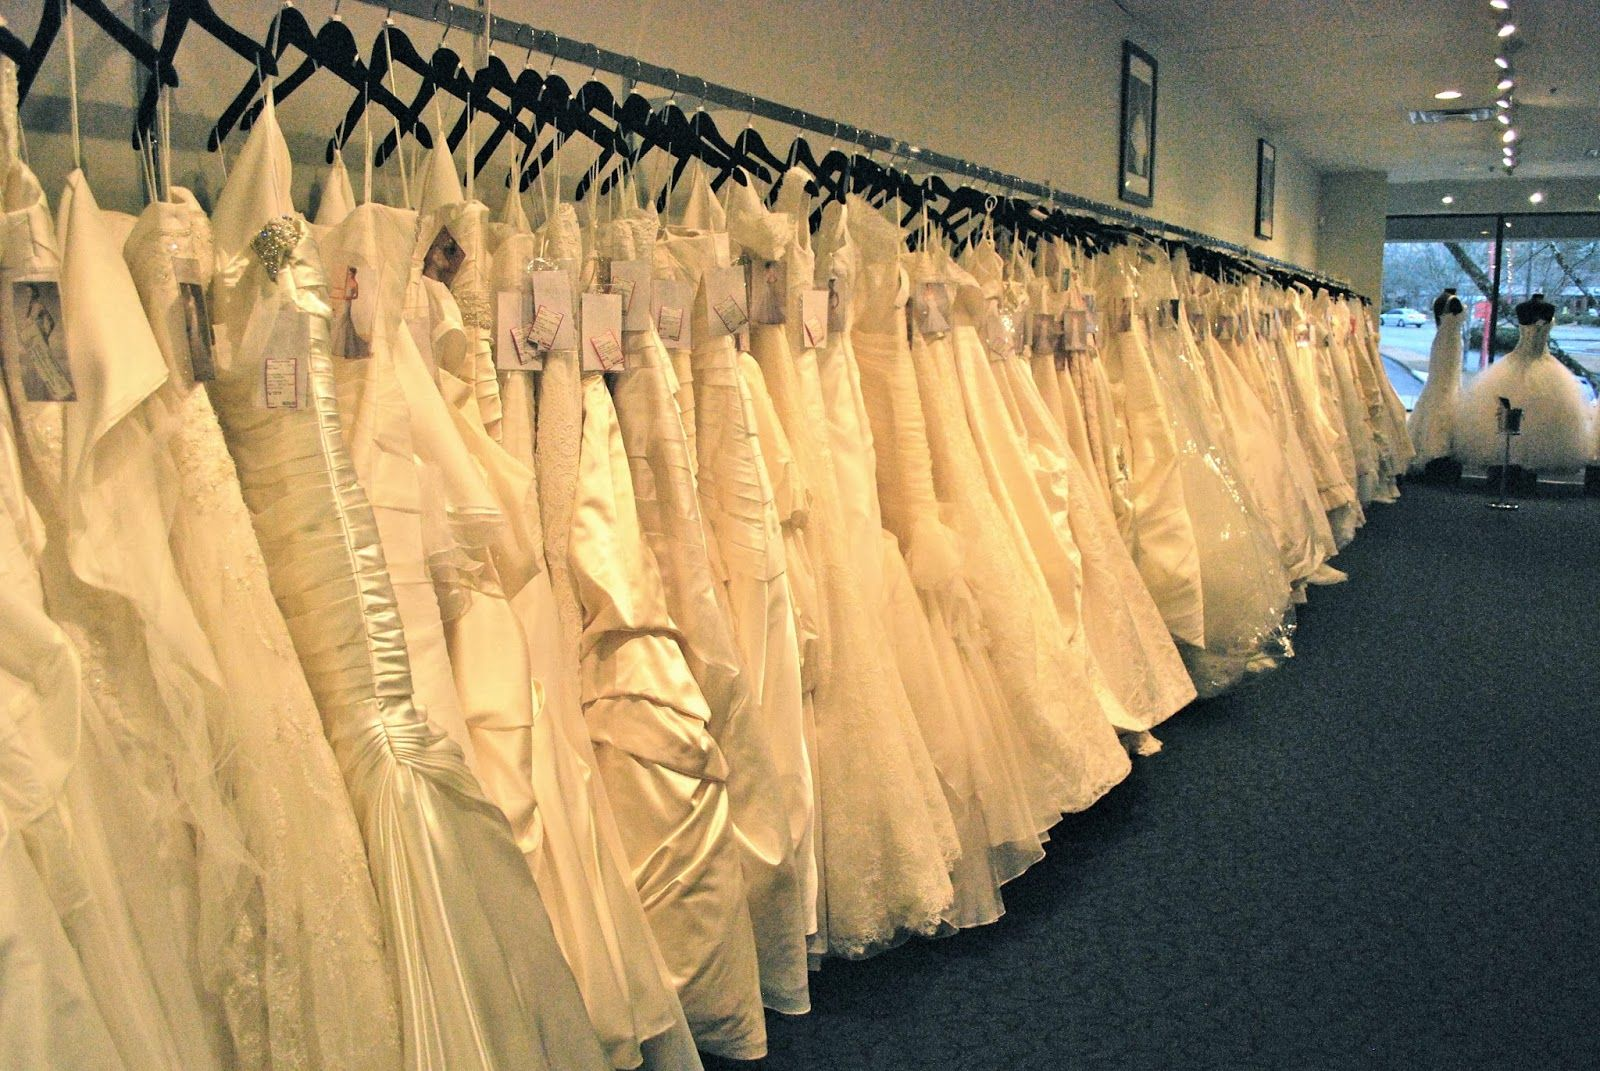 private bridal dressing room - Google Search | Retail store floor ...